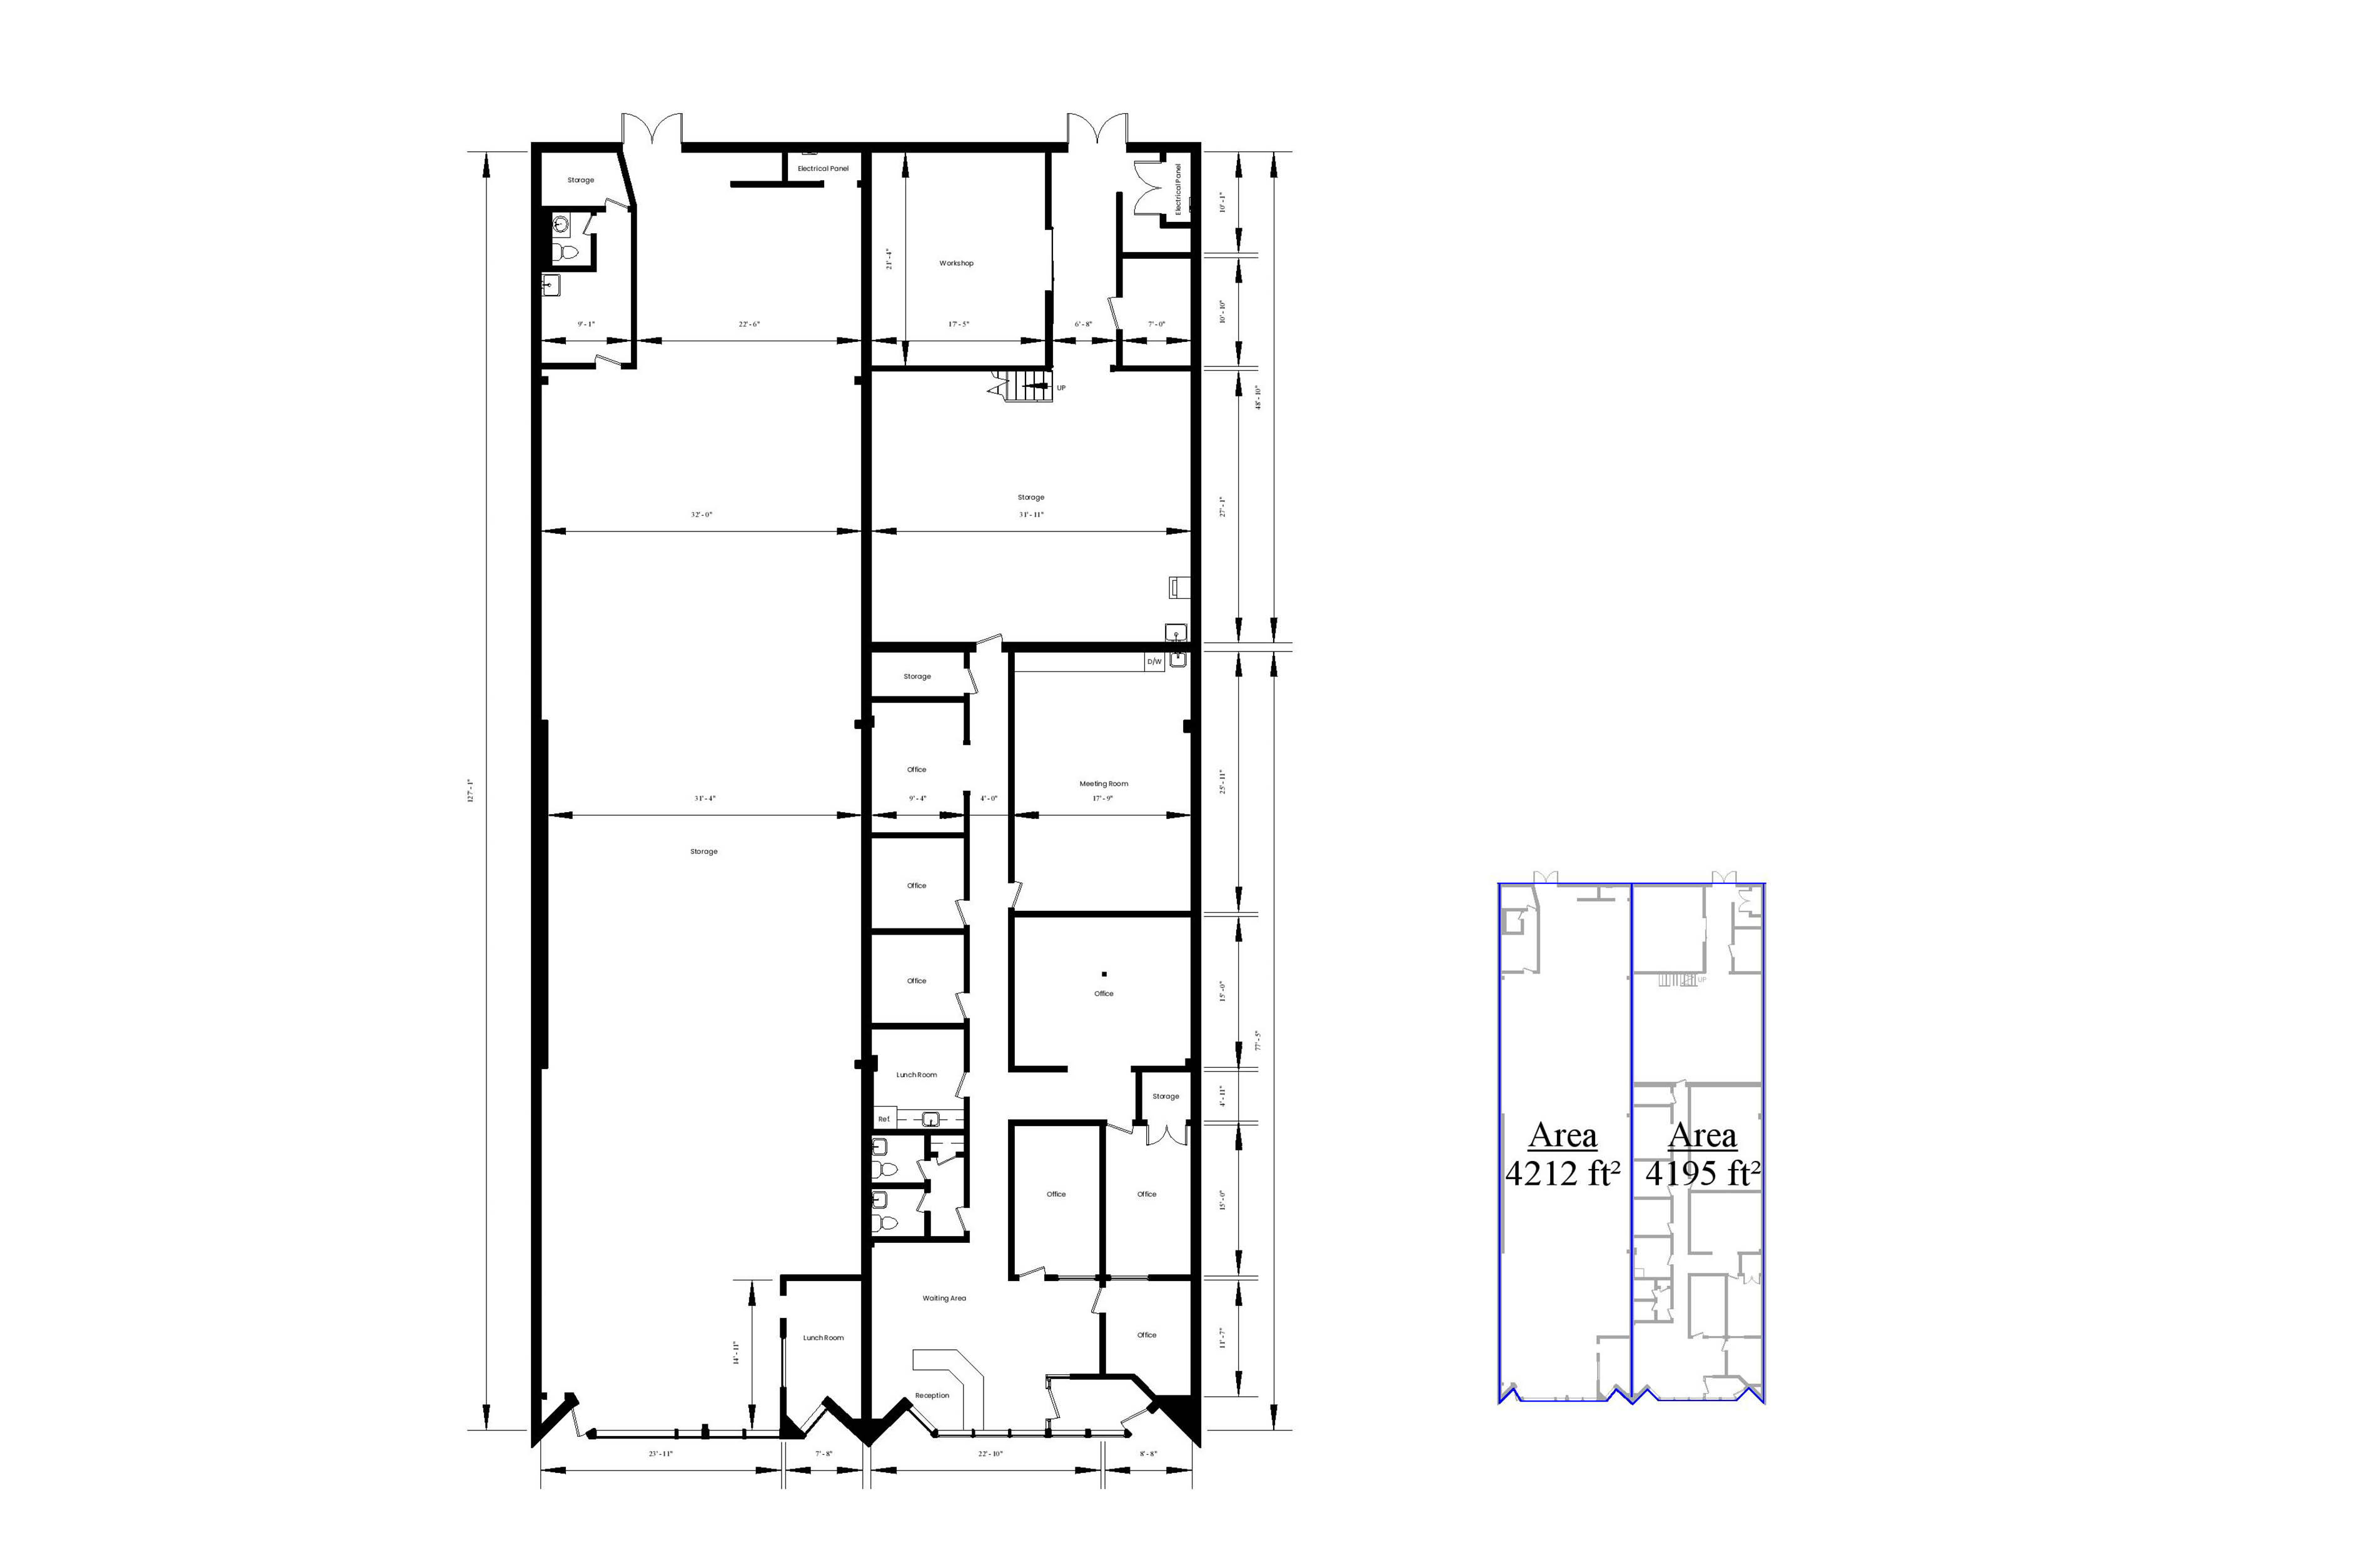 an AutoCad drawing of the floor plan and the Area Analysis plan for an eight thousand and four-hundred square foot industrial building.